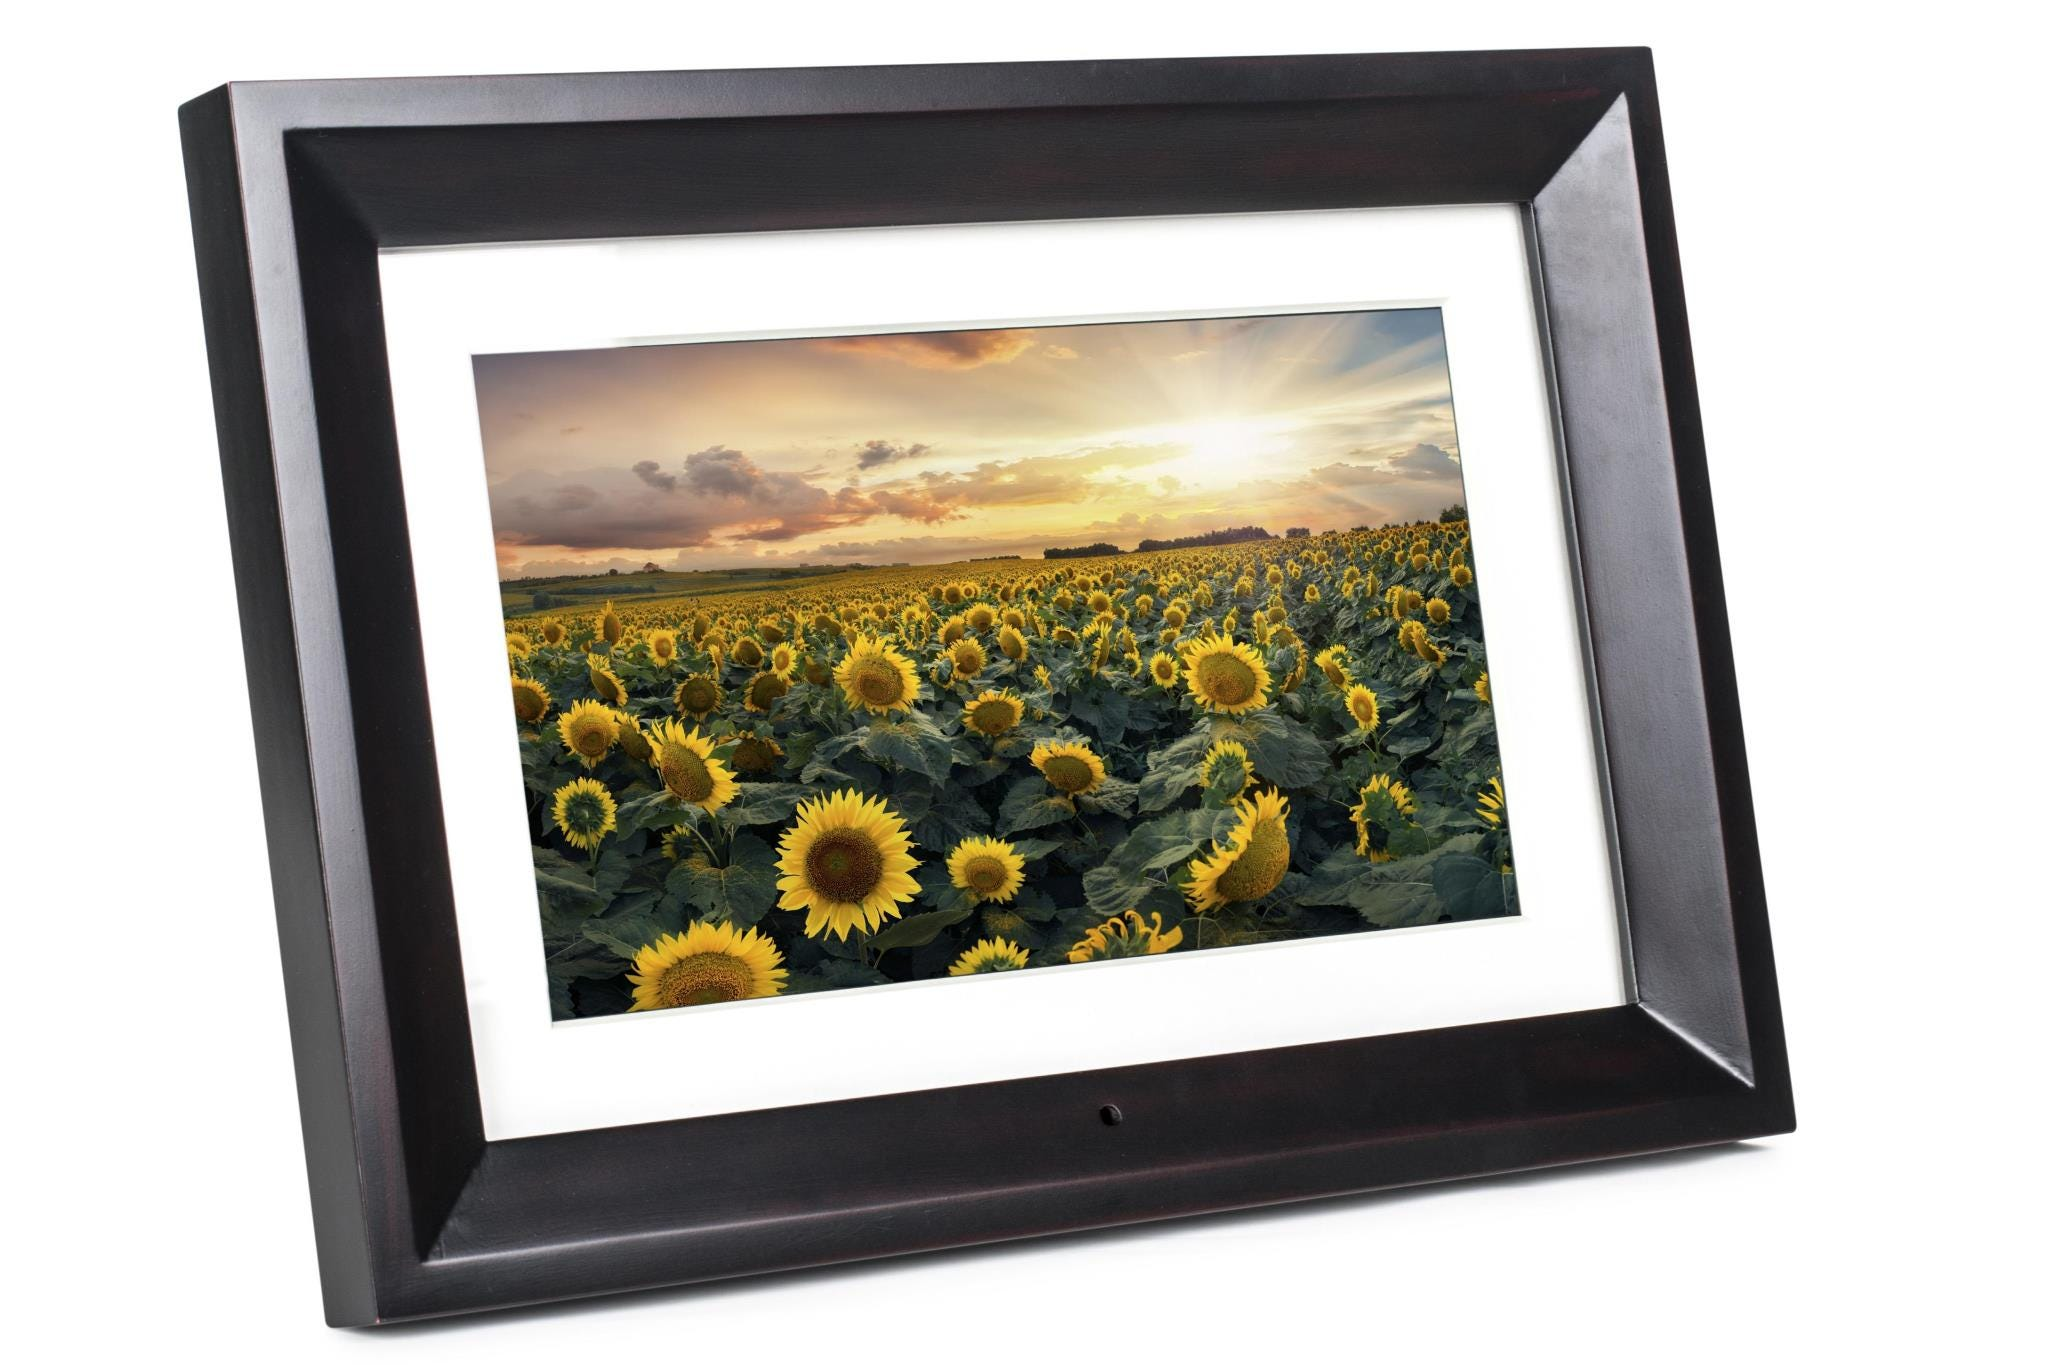 "Kodak High Resolution 1024 x 600 10"" Digital Photo Frame - Black"